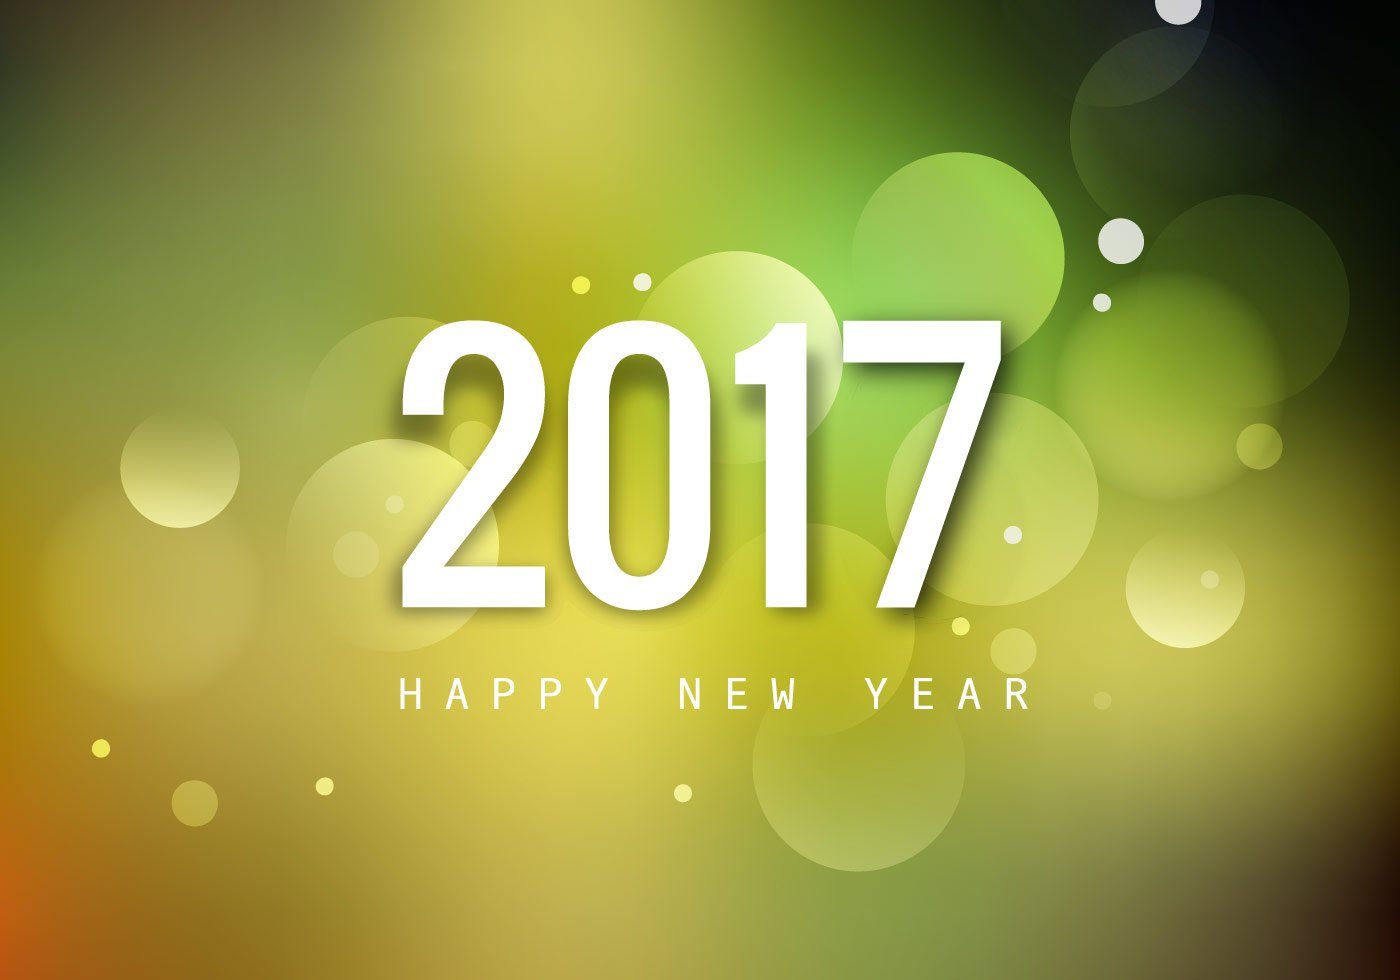 Happy New Year 2017 Traditions Wishes Quotes Greetings Health